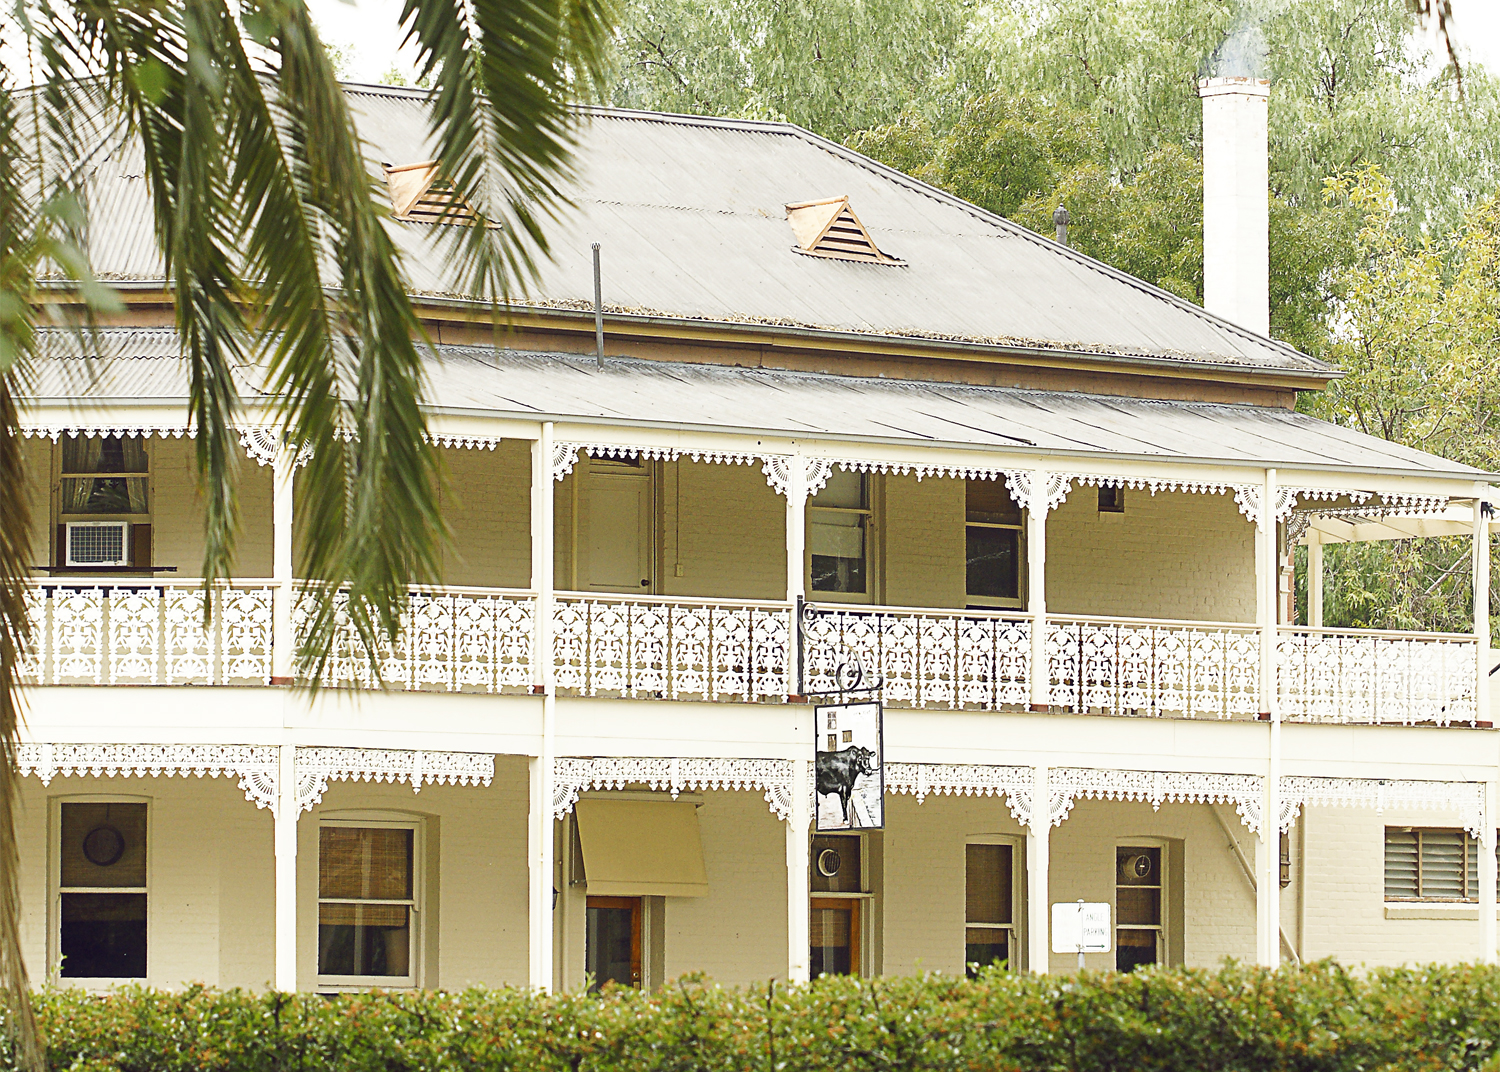 The Seven Creeks Hotel  2 Tarcombe St Euroa Victoria 3666   T  (o3) 5795-3034  (11.30 – 11pm daily)   E   sevencreekshotel@live.com    Mon-Wed  11.30am–Late  Thu-Sat  11.30am–Late  Sun  11.30am–Late